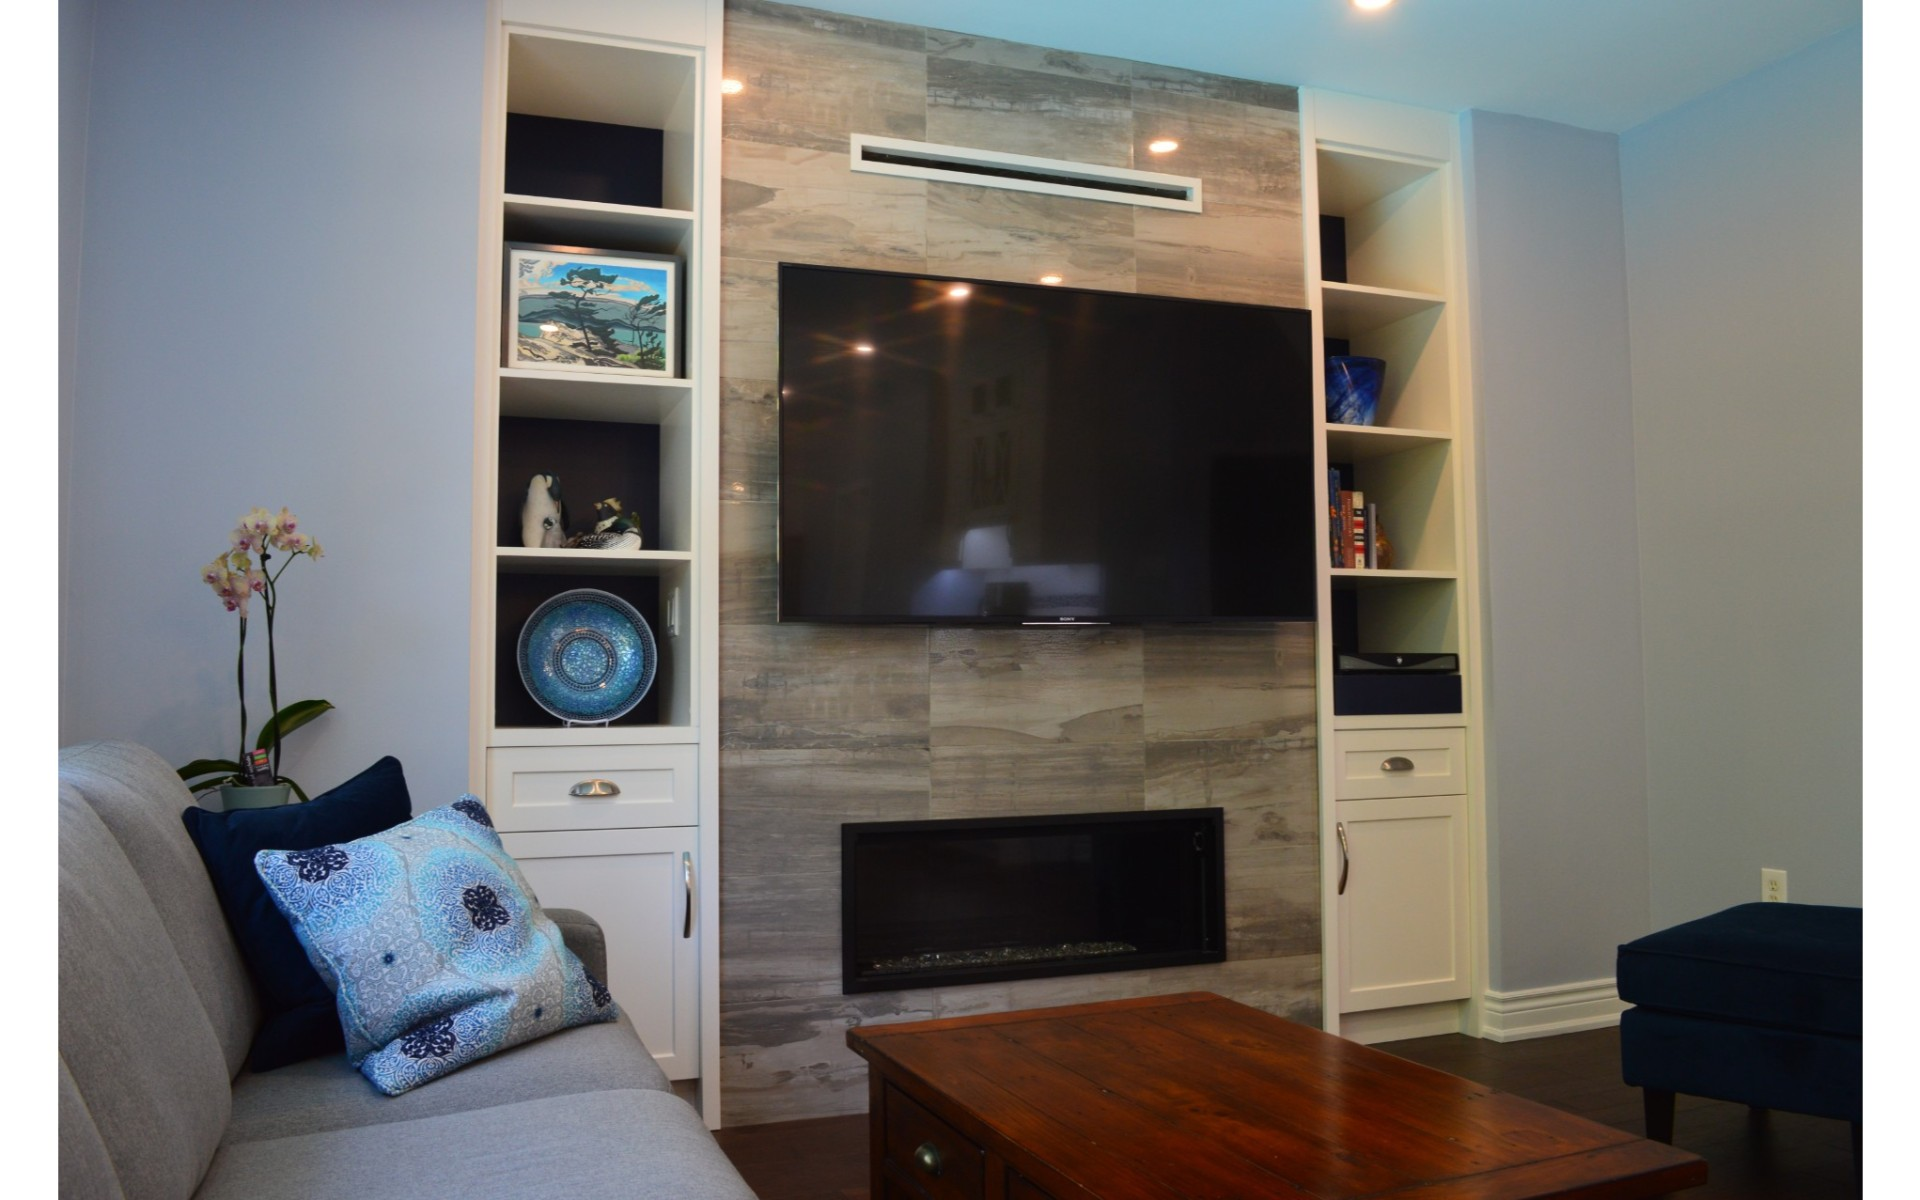 Entertainment centre with TV mounted over fireplace